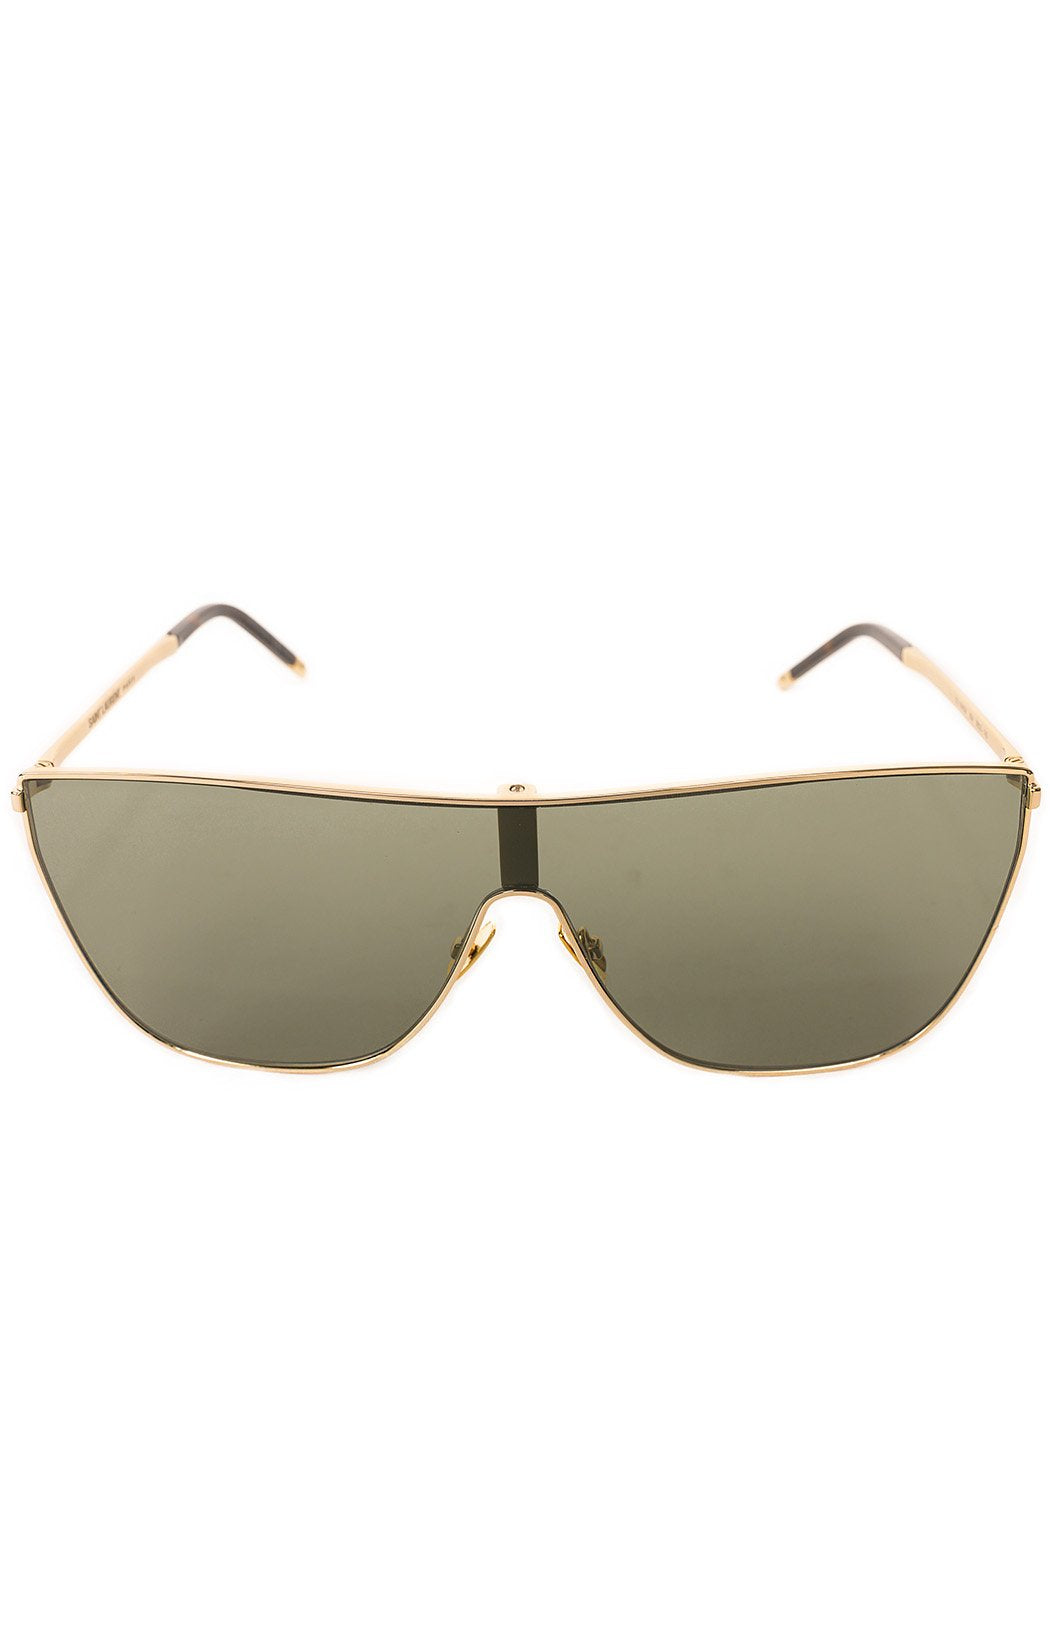 "Front view of SAINT LAURENT  Sunglasses  Size: 5.78"" W x 2"" H"